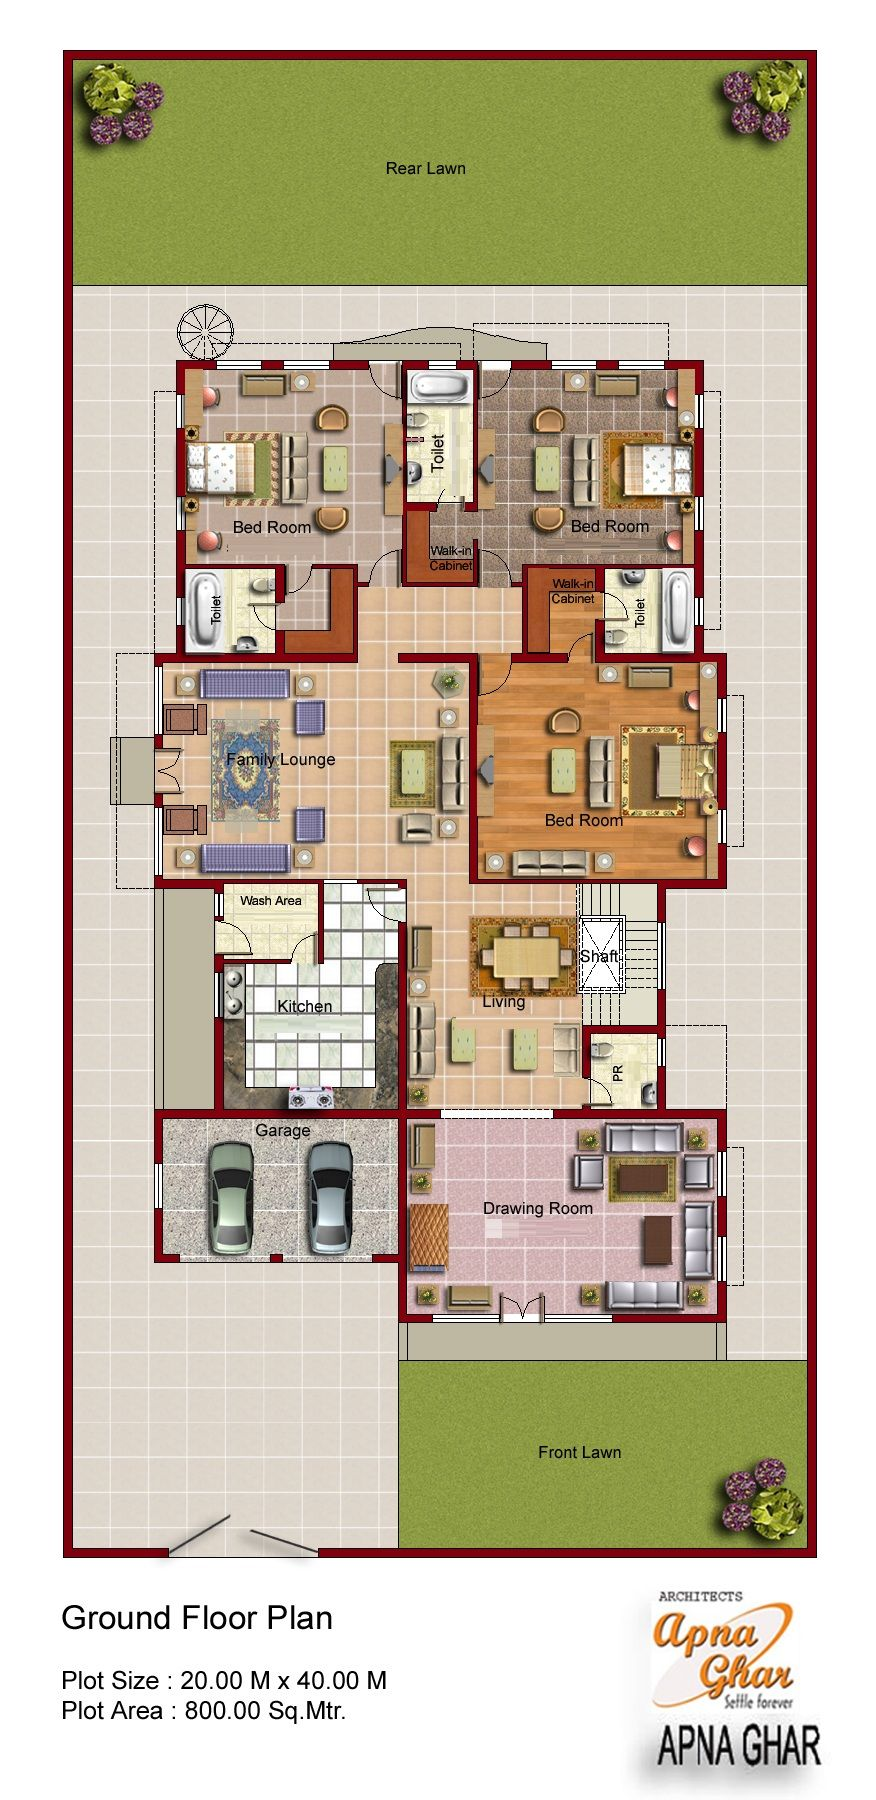 2d floor plan for modern duplex 2 floor house area 800 for Home designs 2 floor